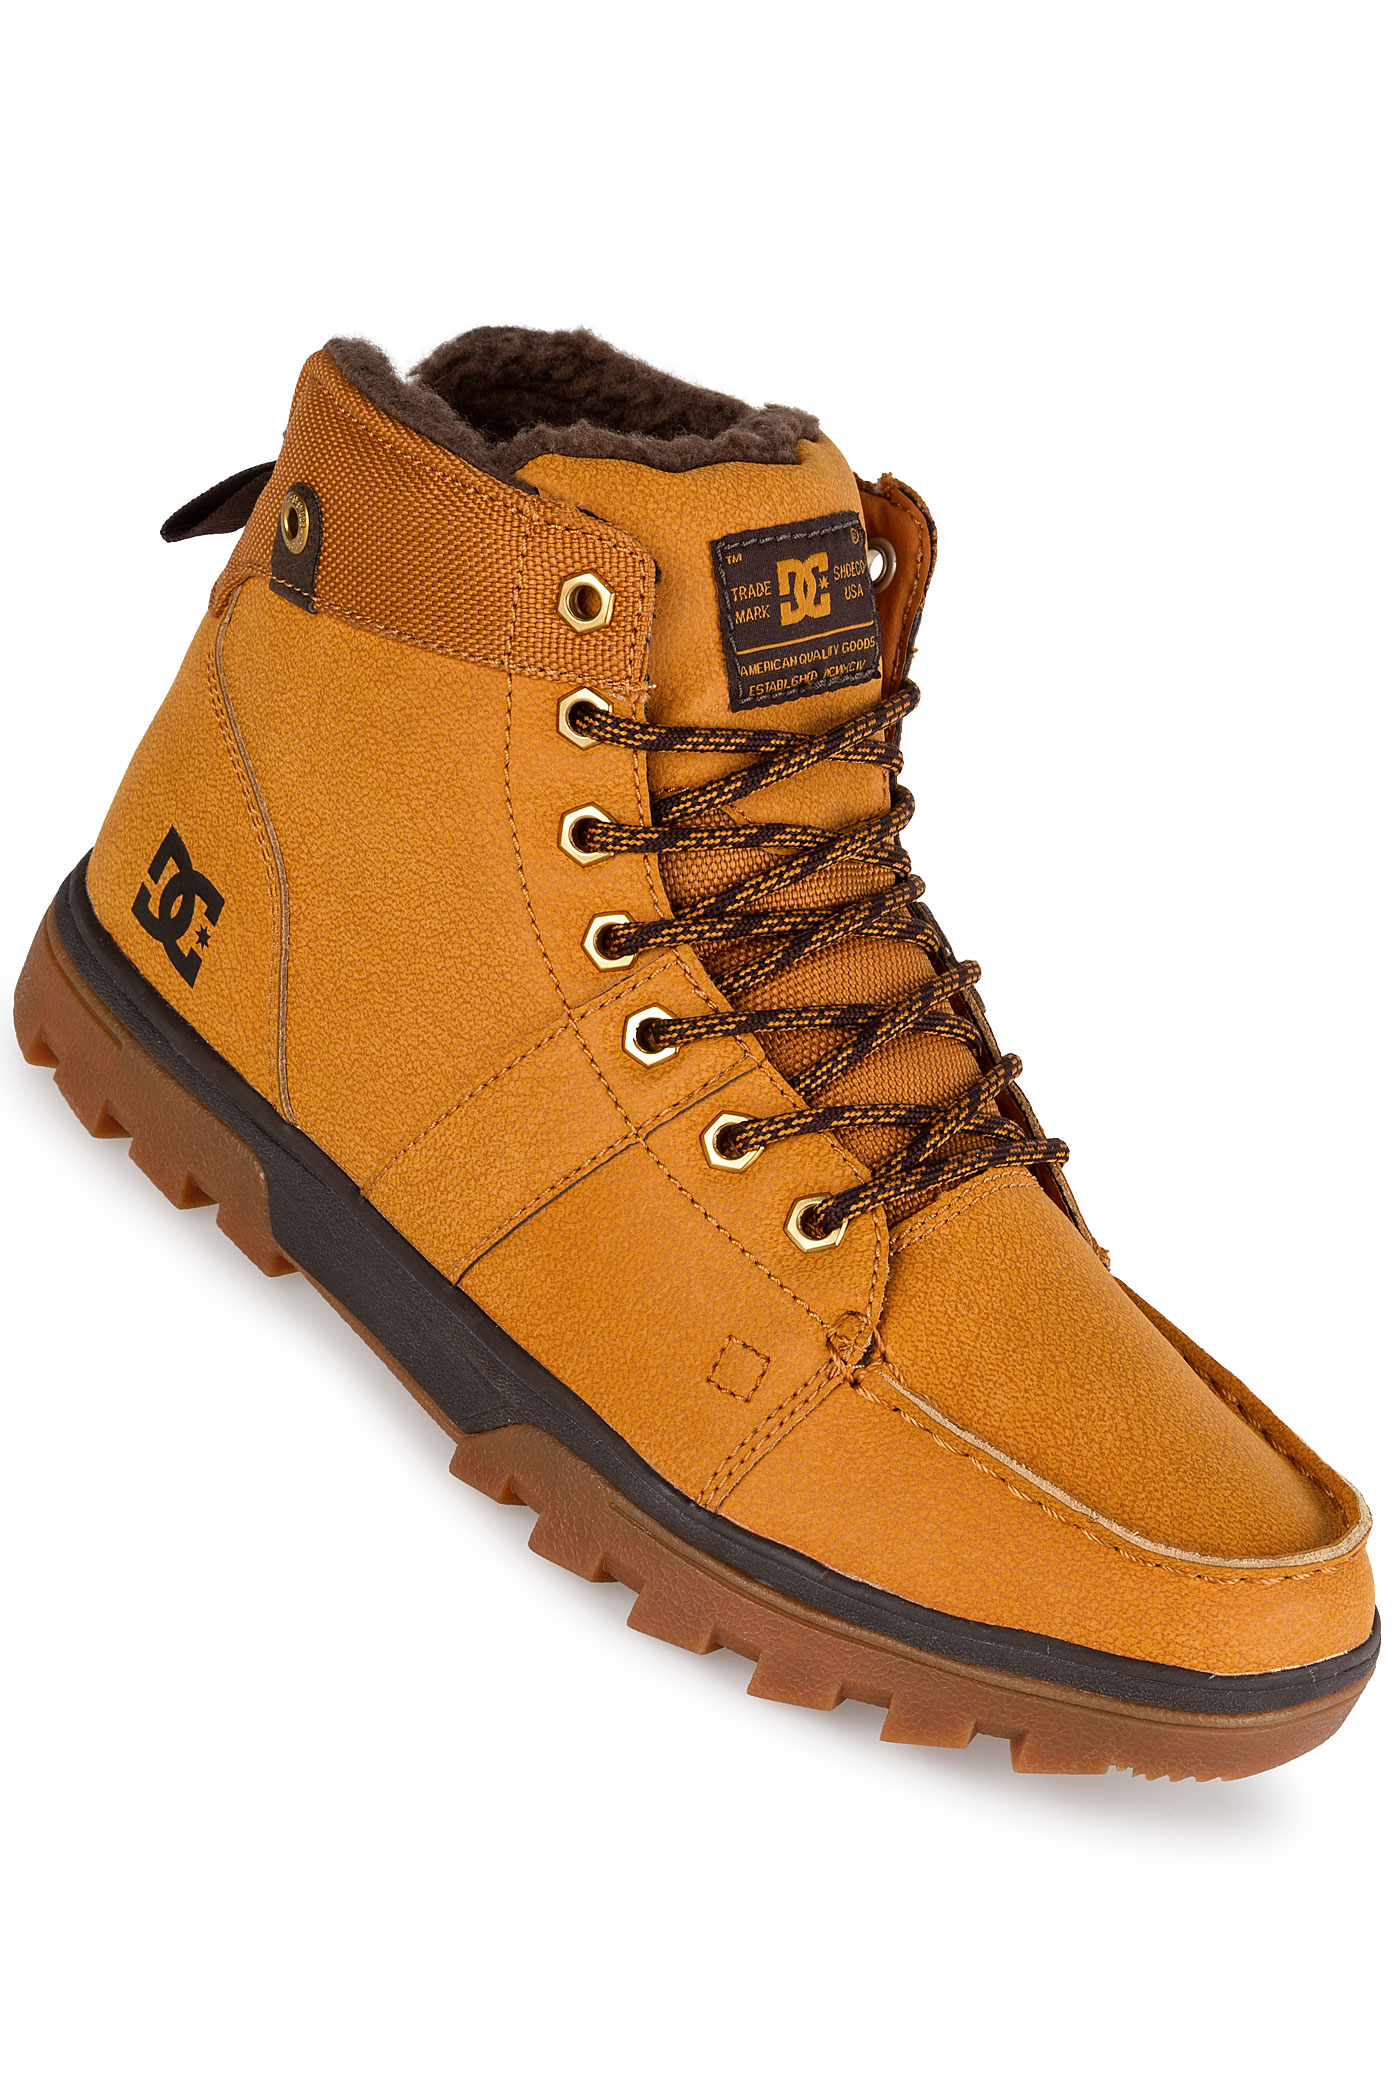 DC Woodland Shoes (wheat) buy at skatedeluxe